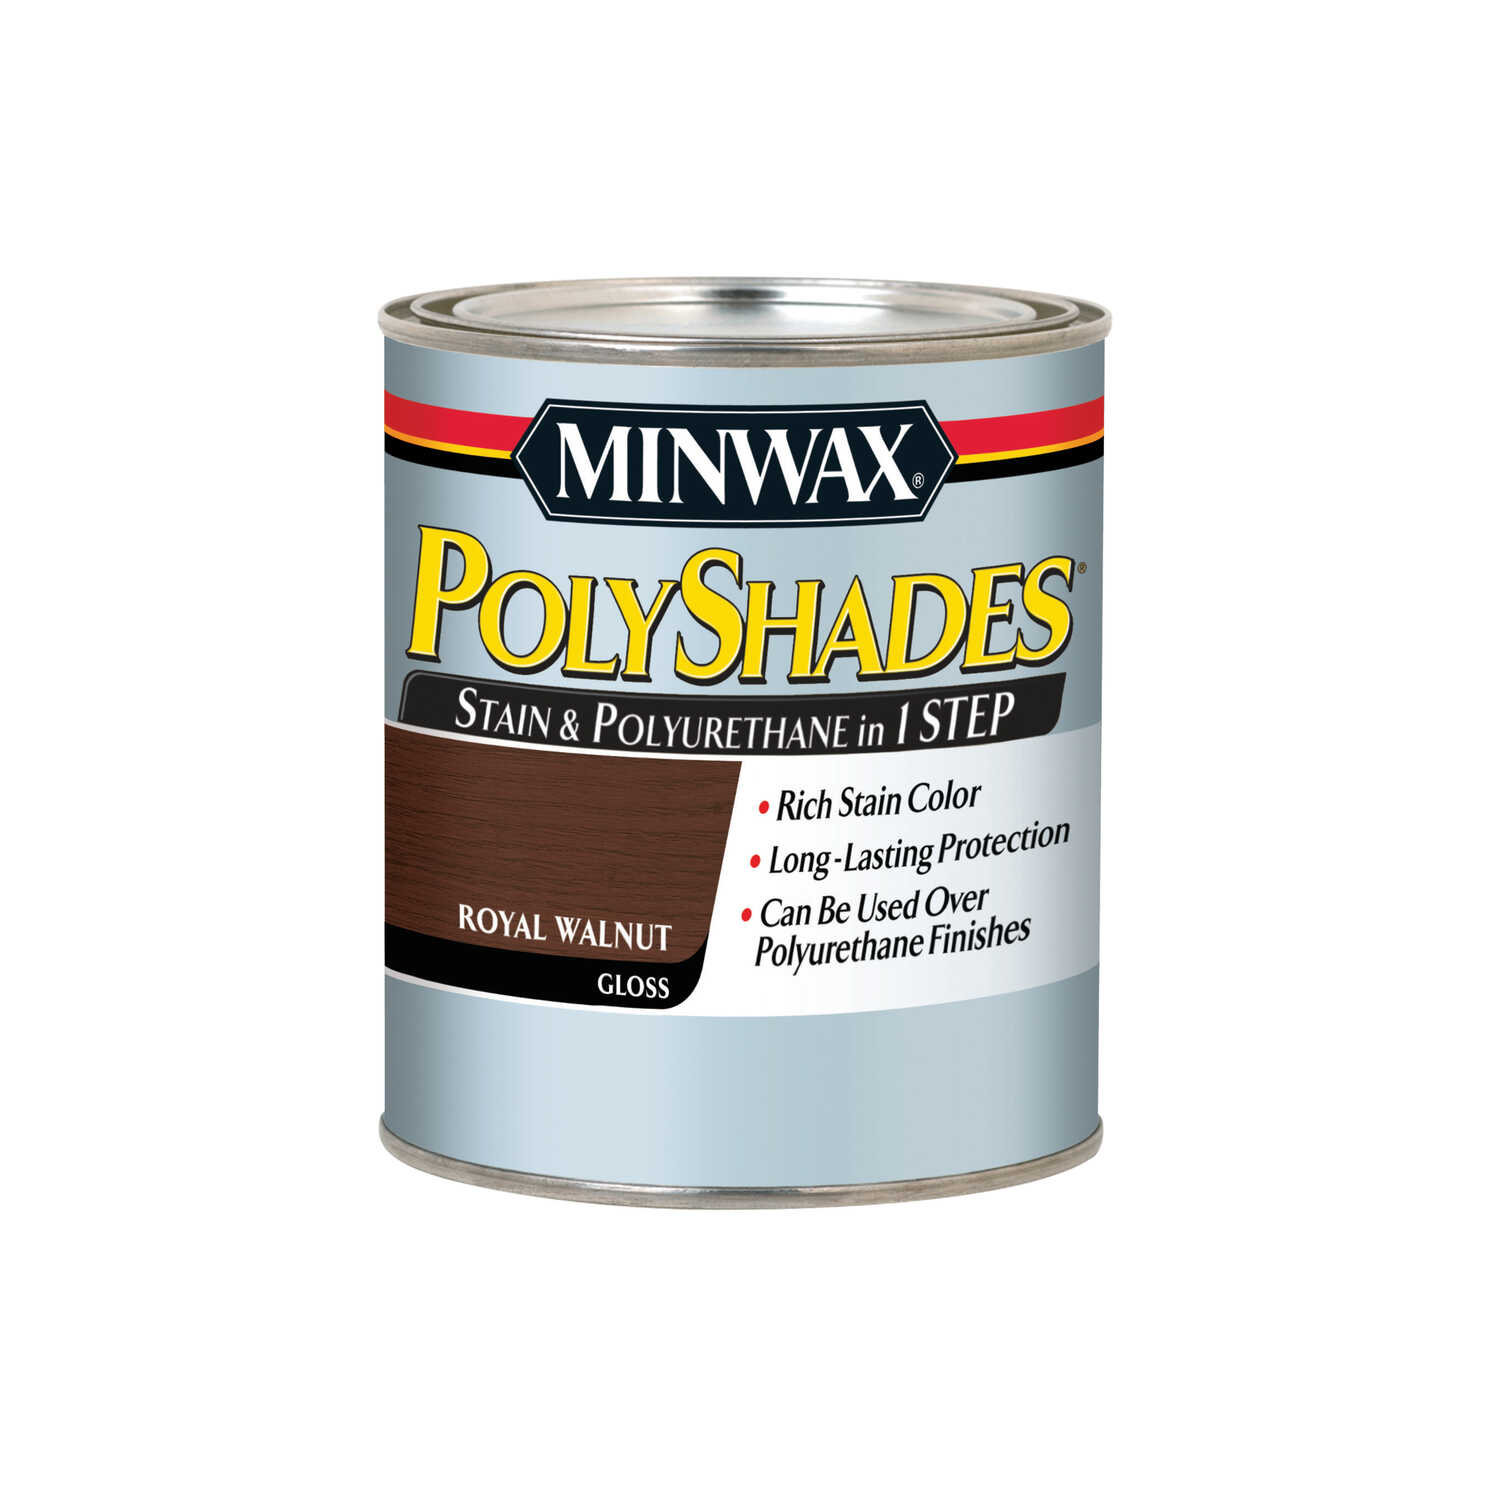 Minwax  PolyShades  Semi-Transparent  Gloss  Royal Walnut  Oil-Based  Stain  1 qt.